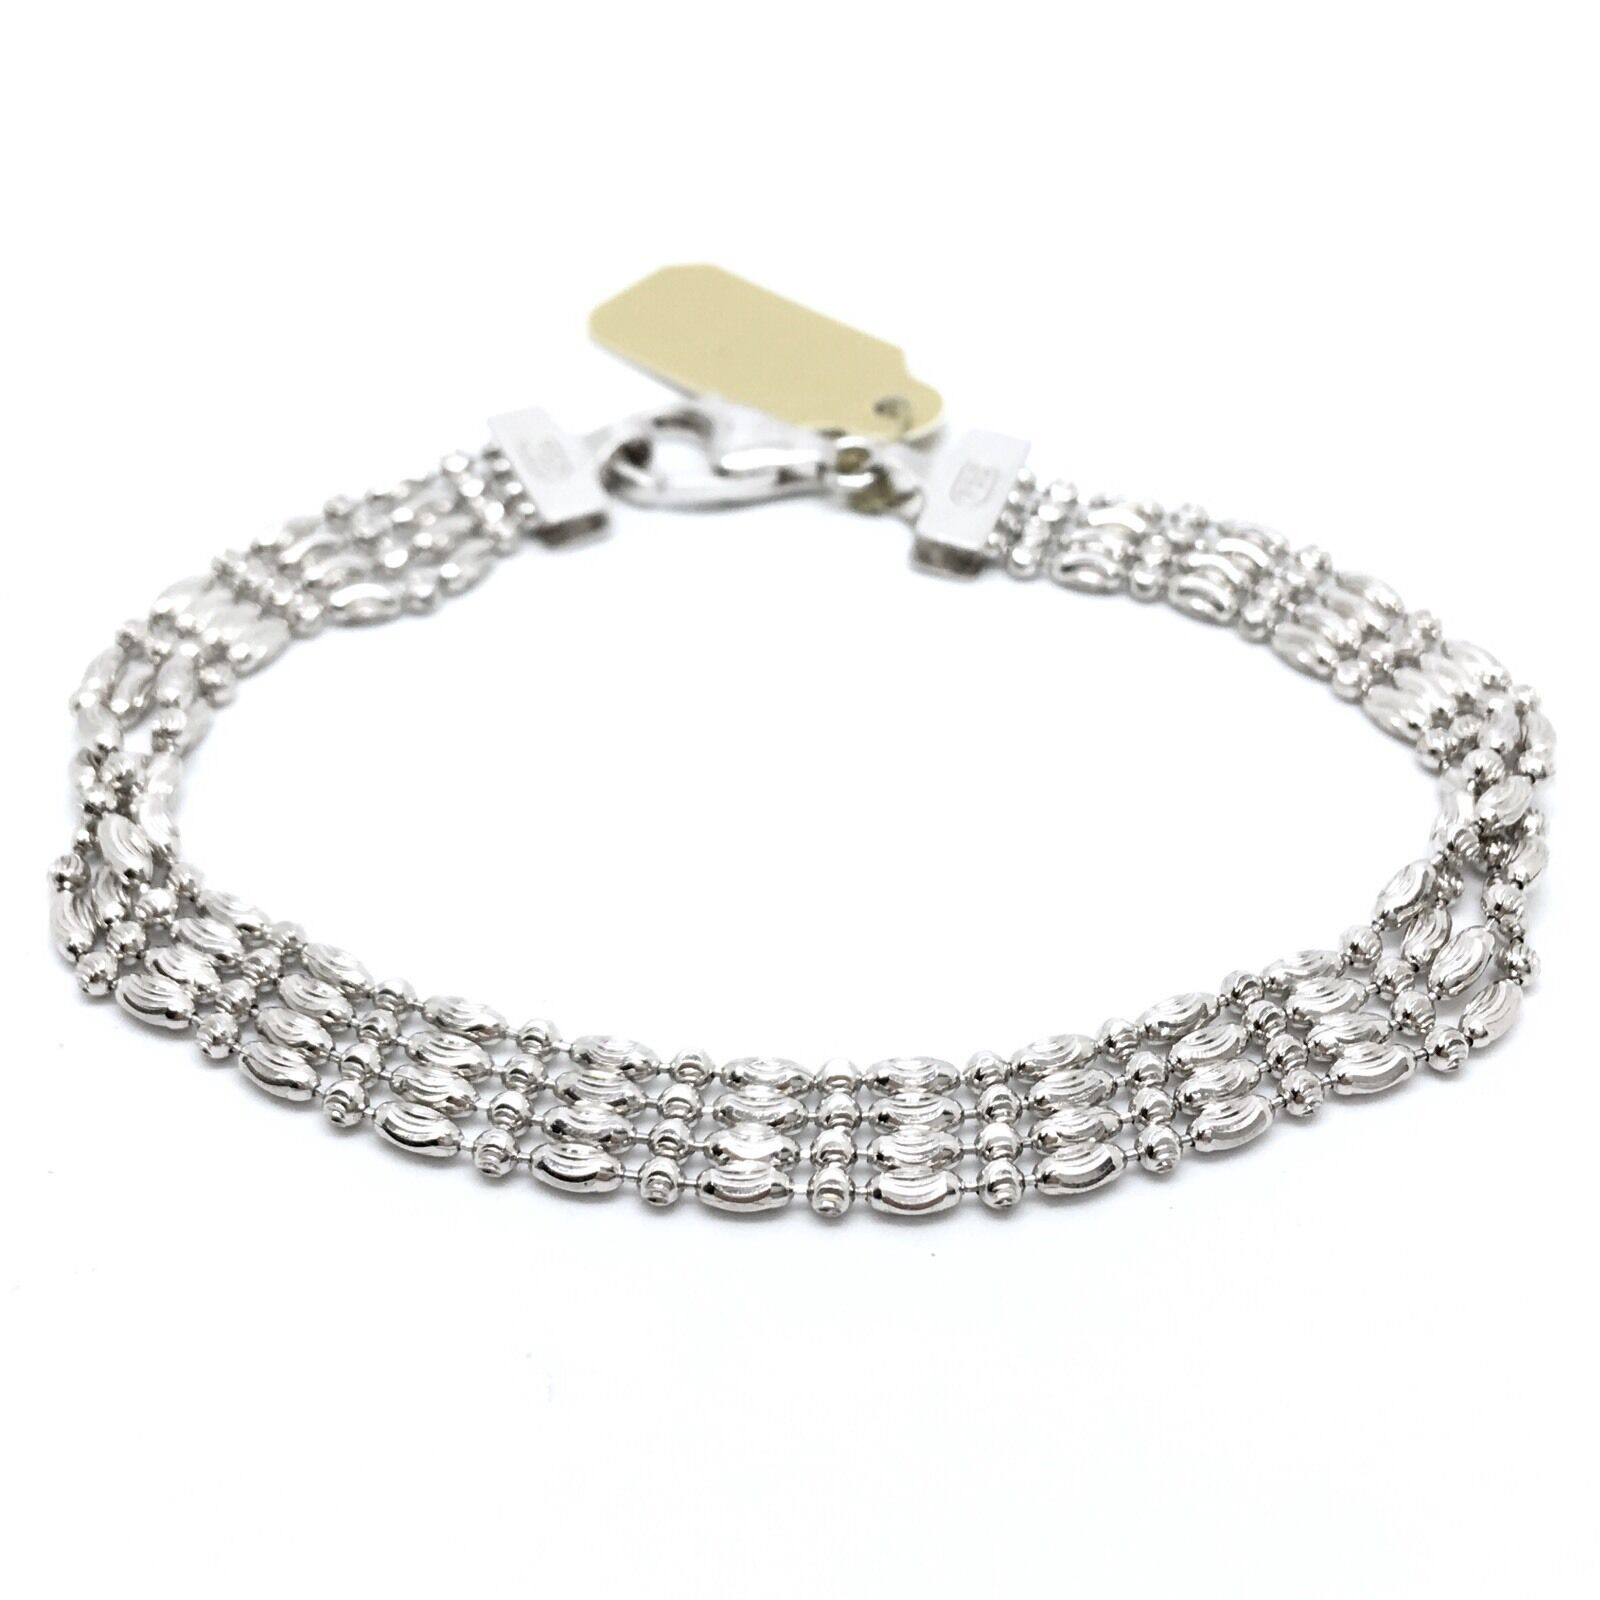 18K Solid White gold 4 Strands Beads Bracelet